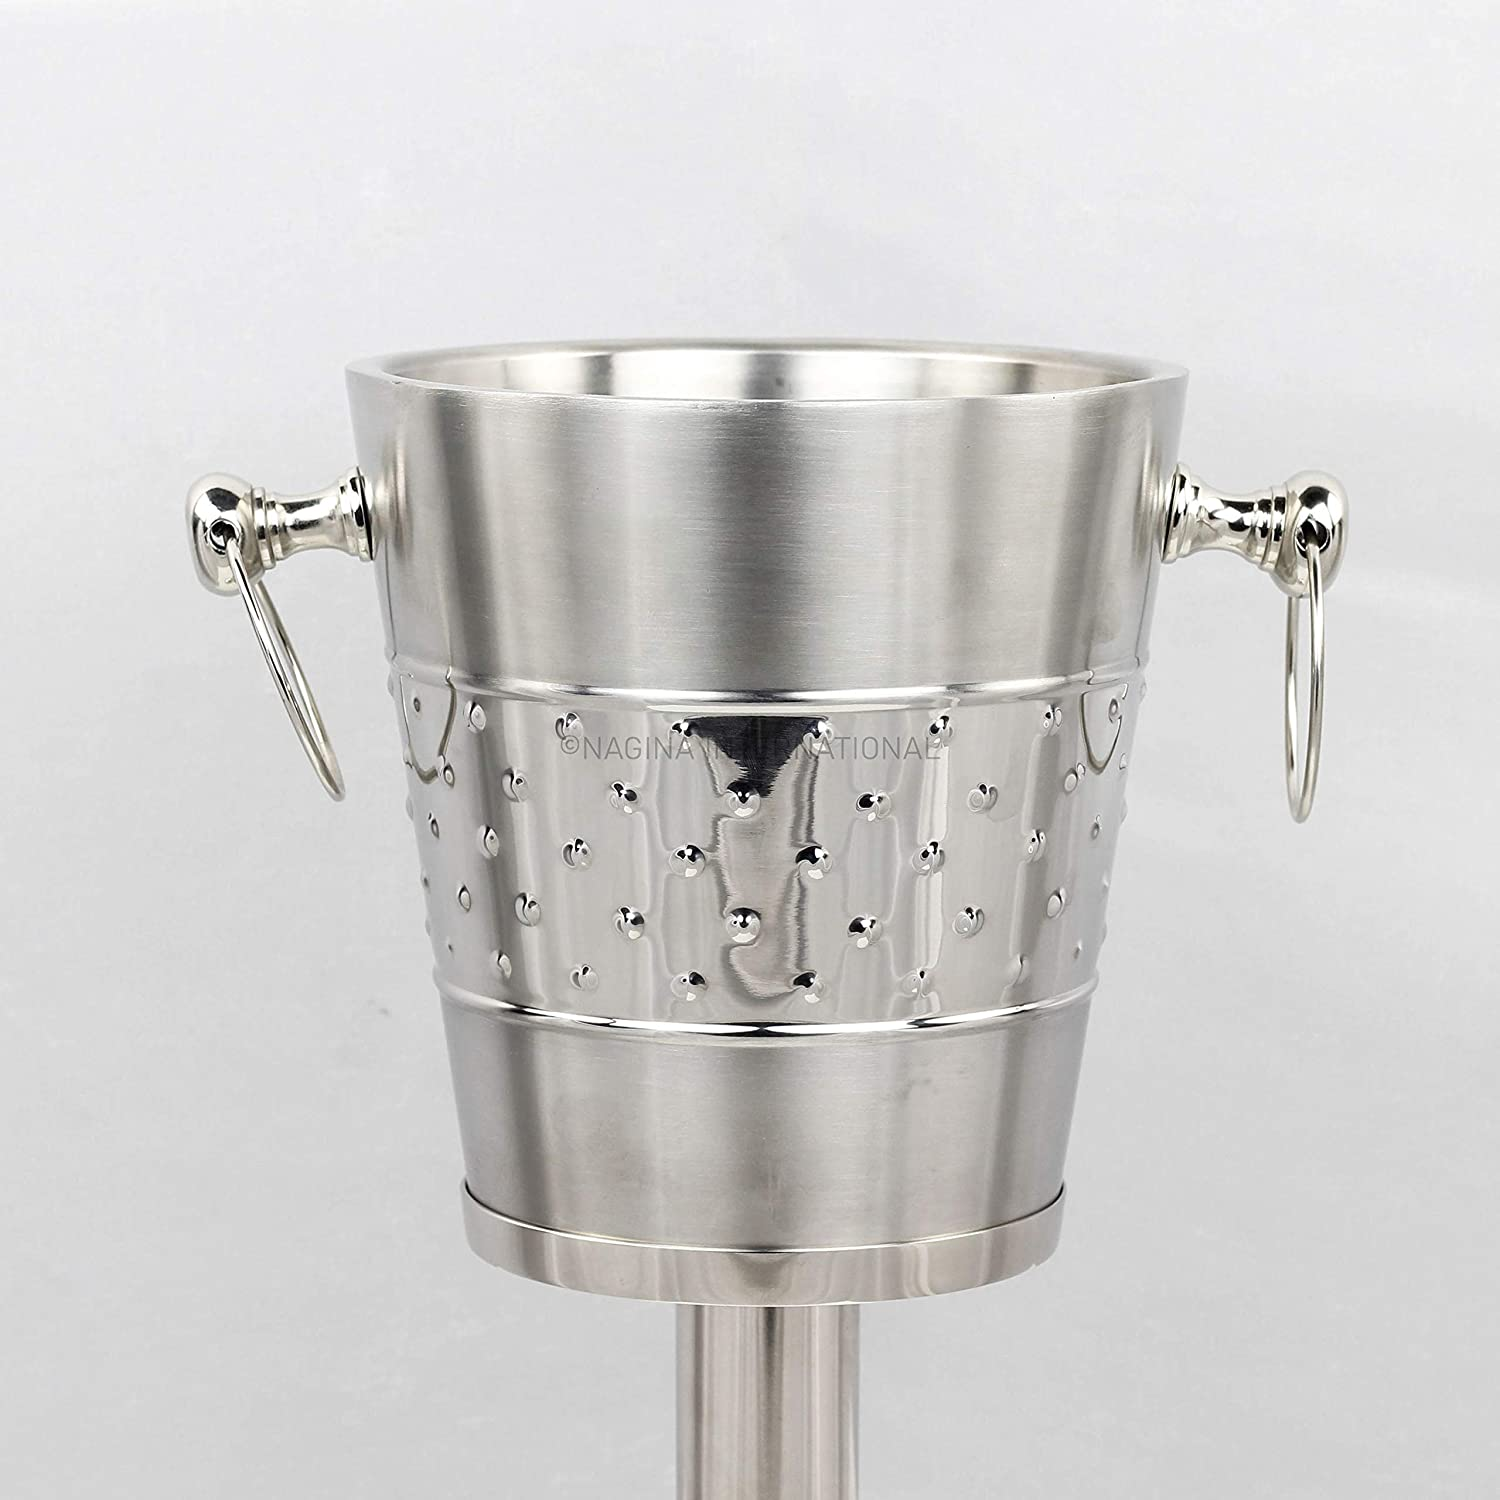 Wine Chiller On Stand Kitchenware Bar ware Indo-Persian Double Walled Insulated Brushed Nickel Plated Majestic Wine /& Ice Bucket With Steel Bucket Stand